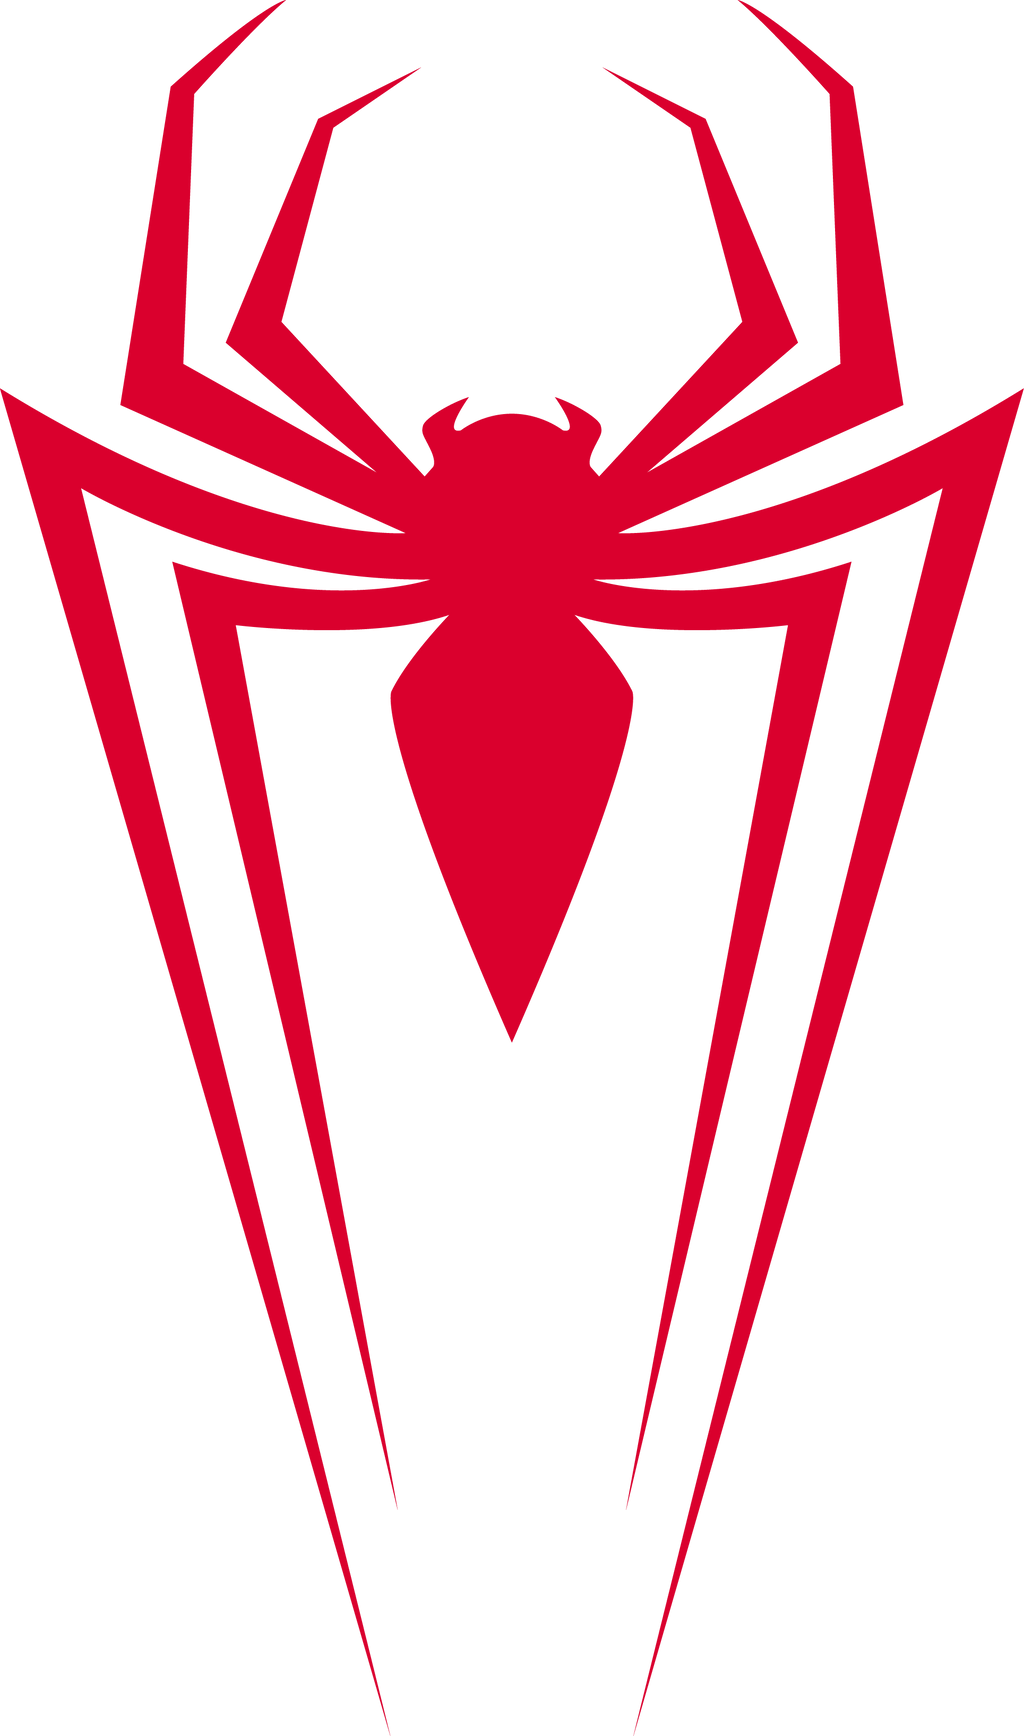 Spider-man modern symbol by redknightz01 on DeviantArt